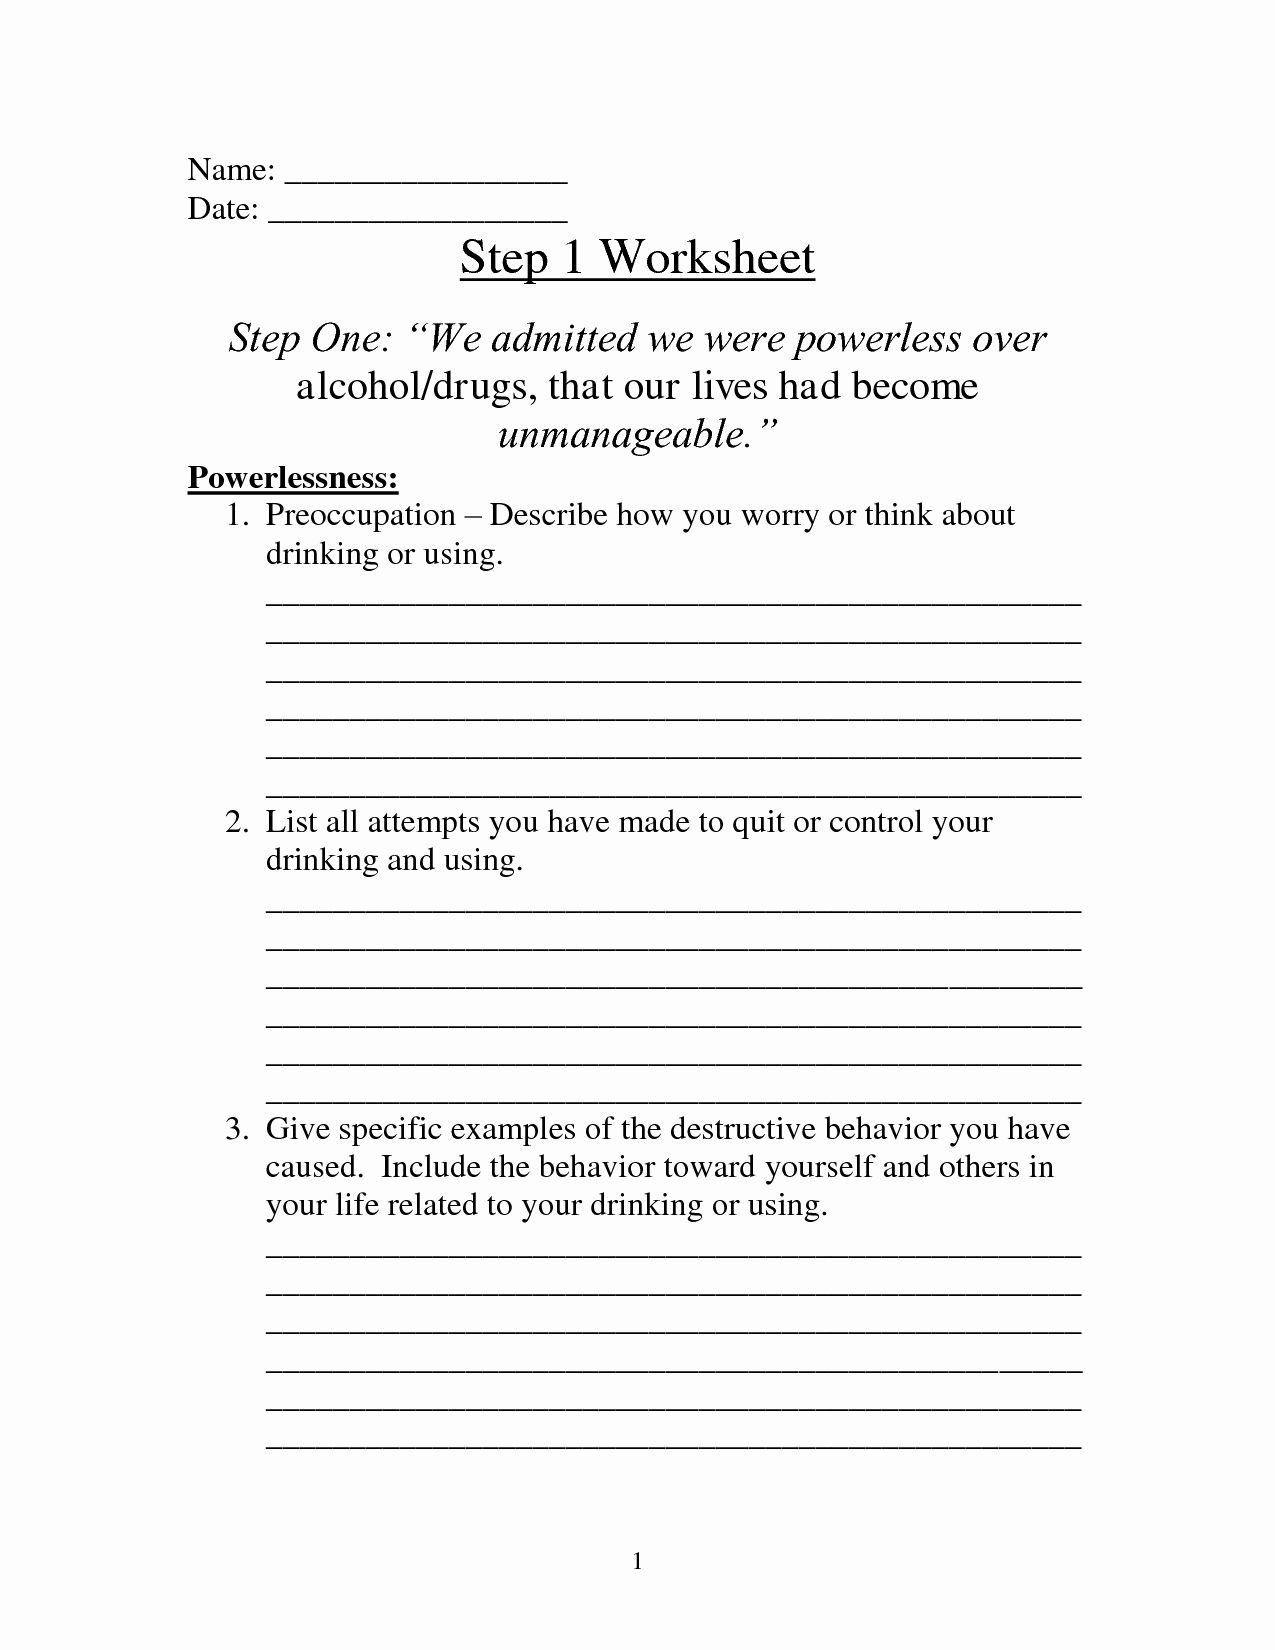 25 Awesome Aa 4th Step Worksheet Joe And Charlie Images